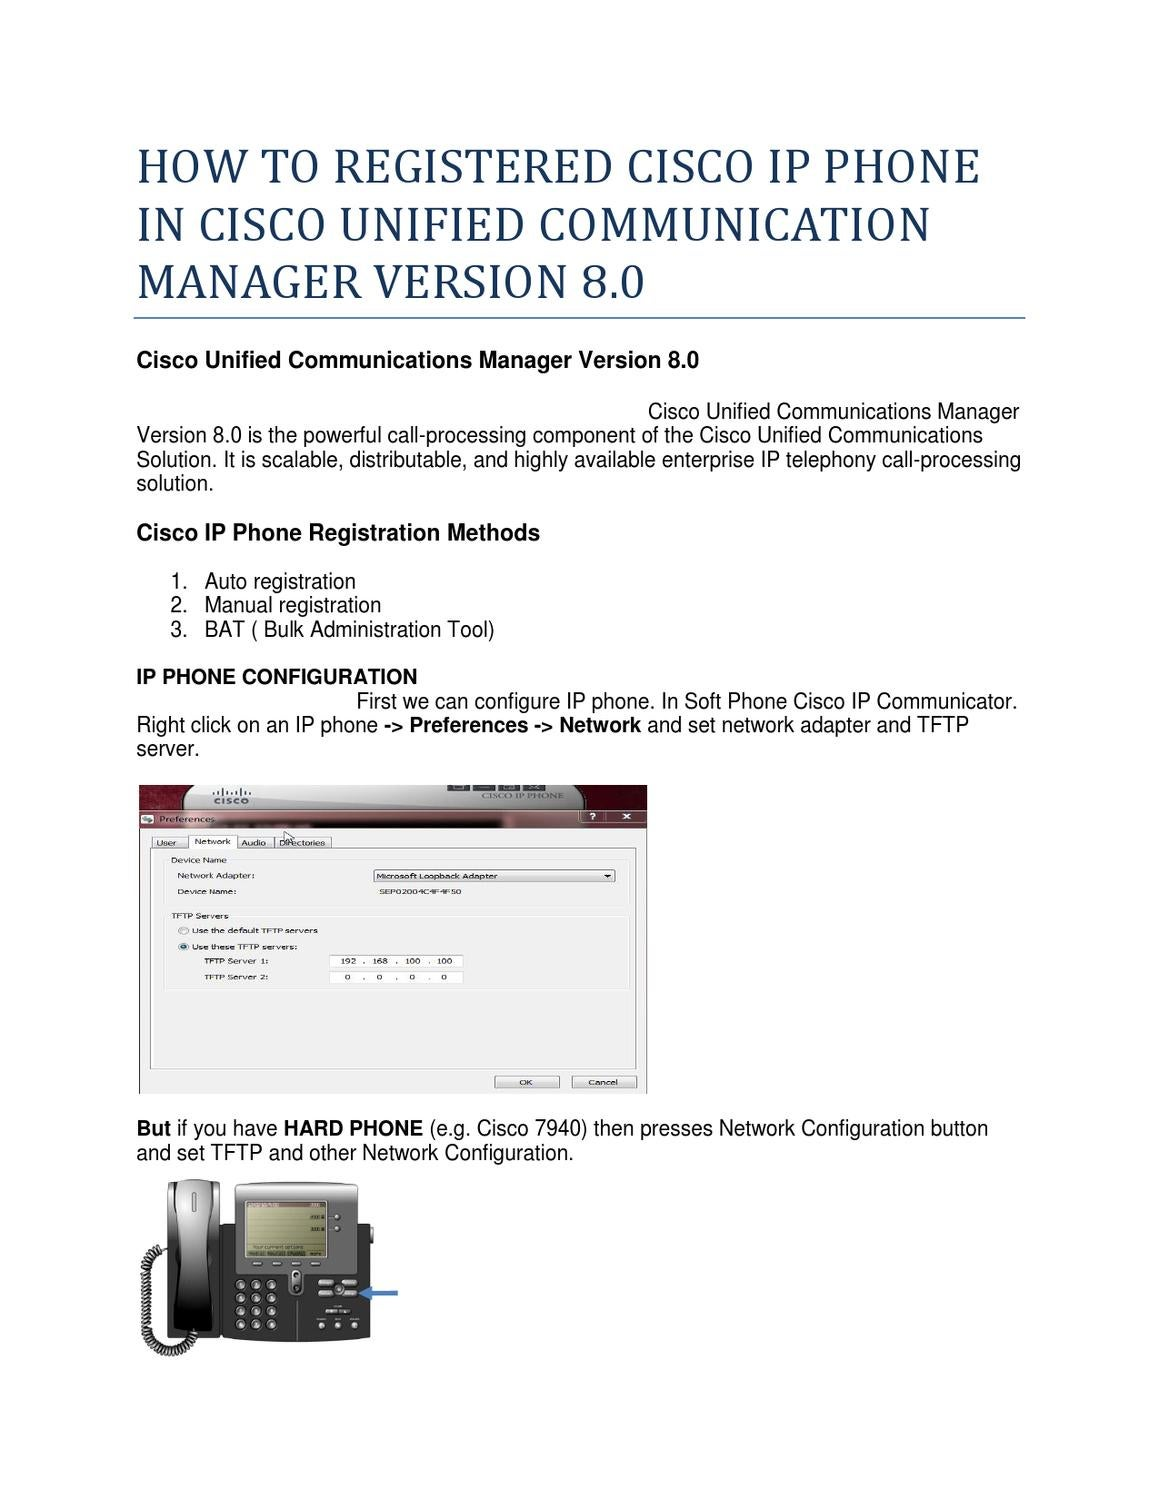 HOW TO REGISTERED CISCO IP PHONE IN CISC O